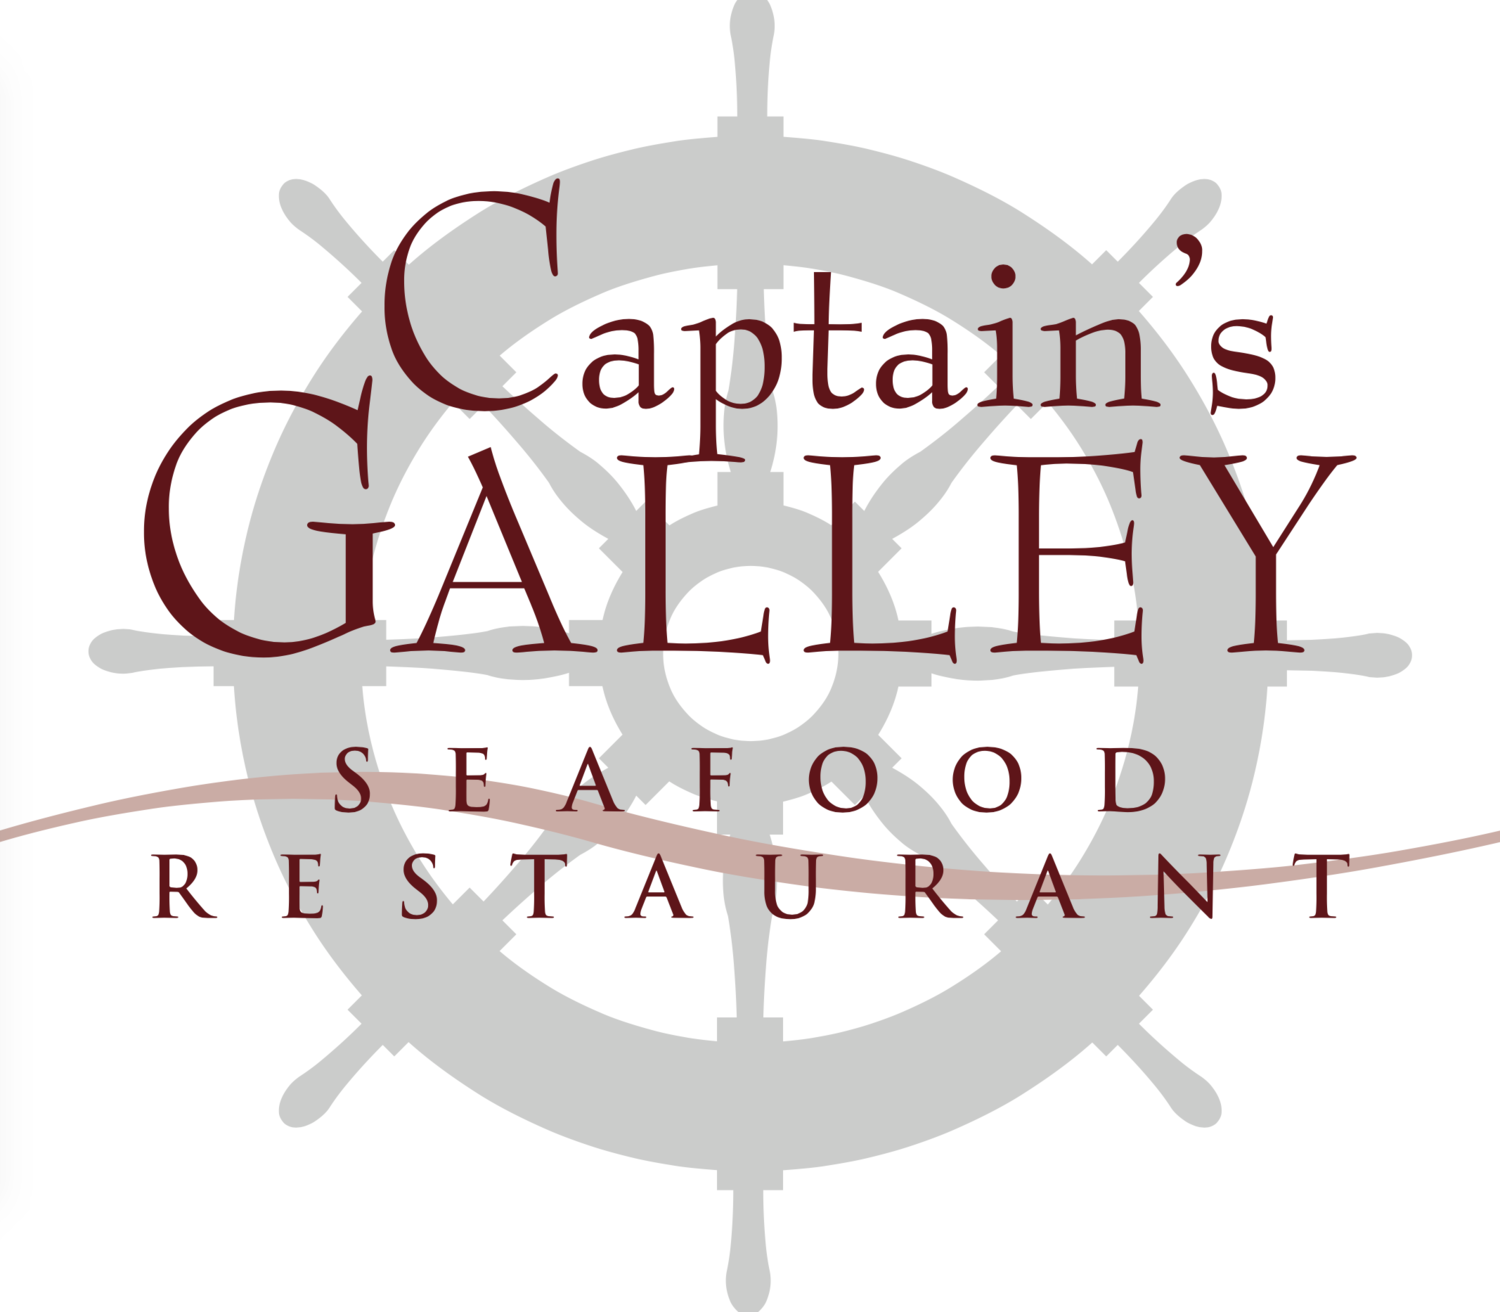 The Captain's Galley